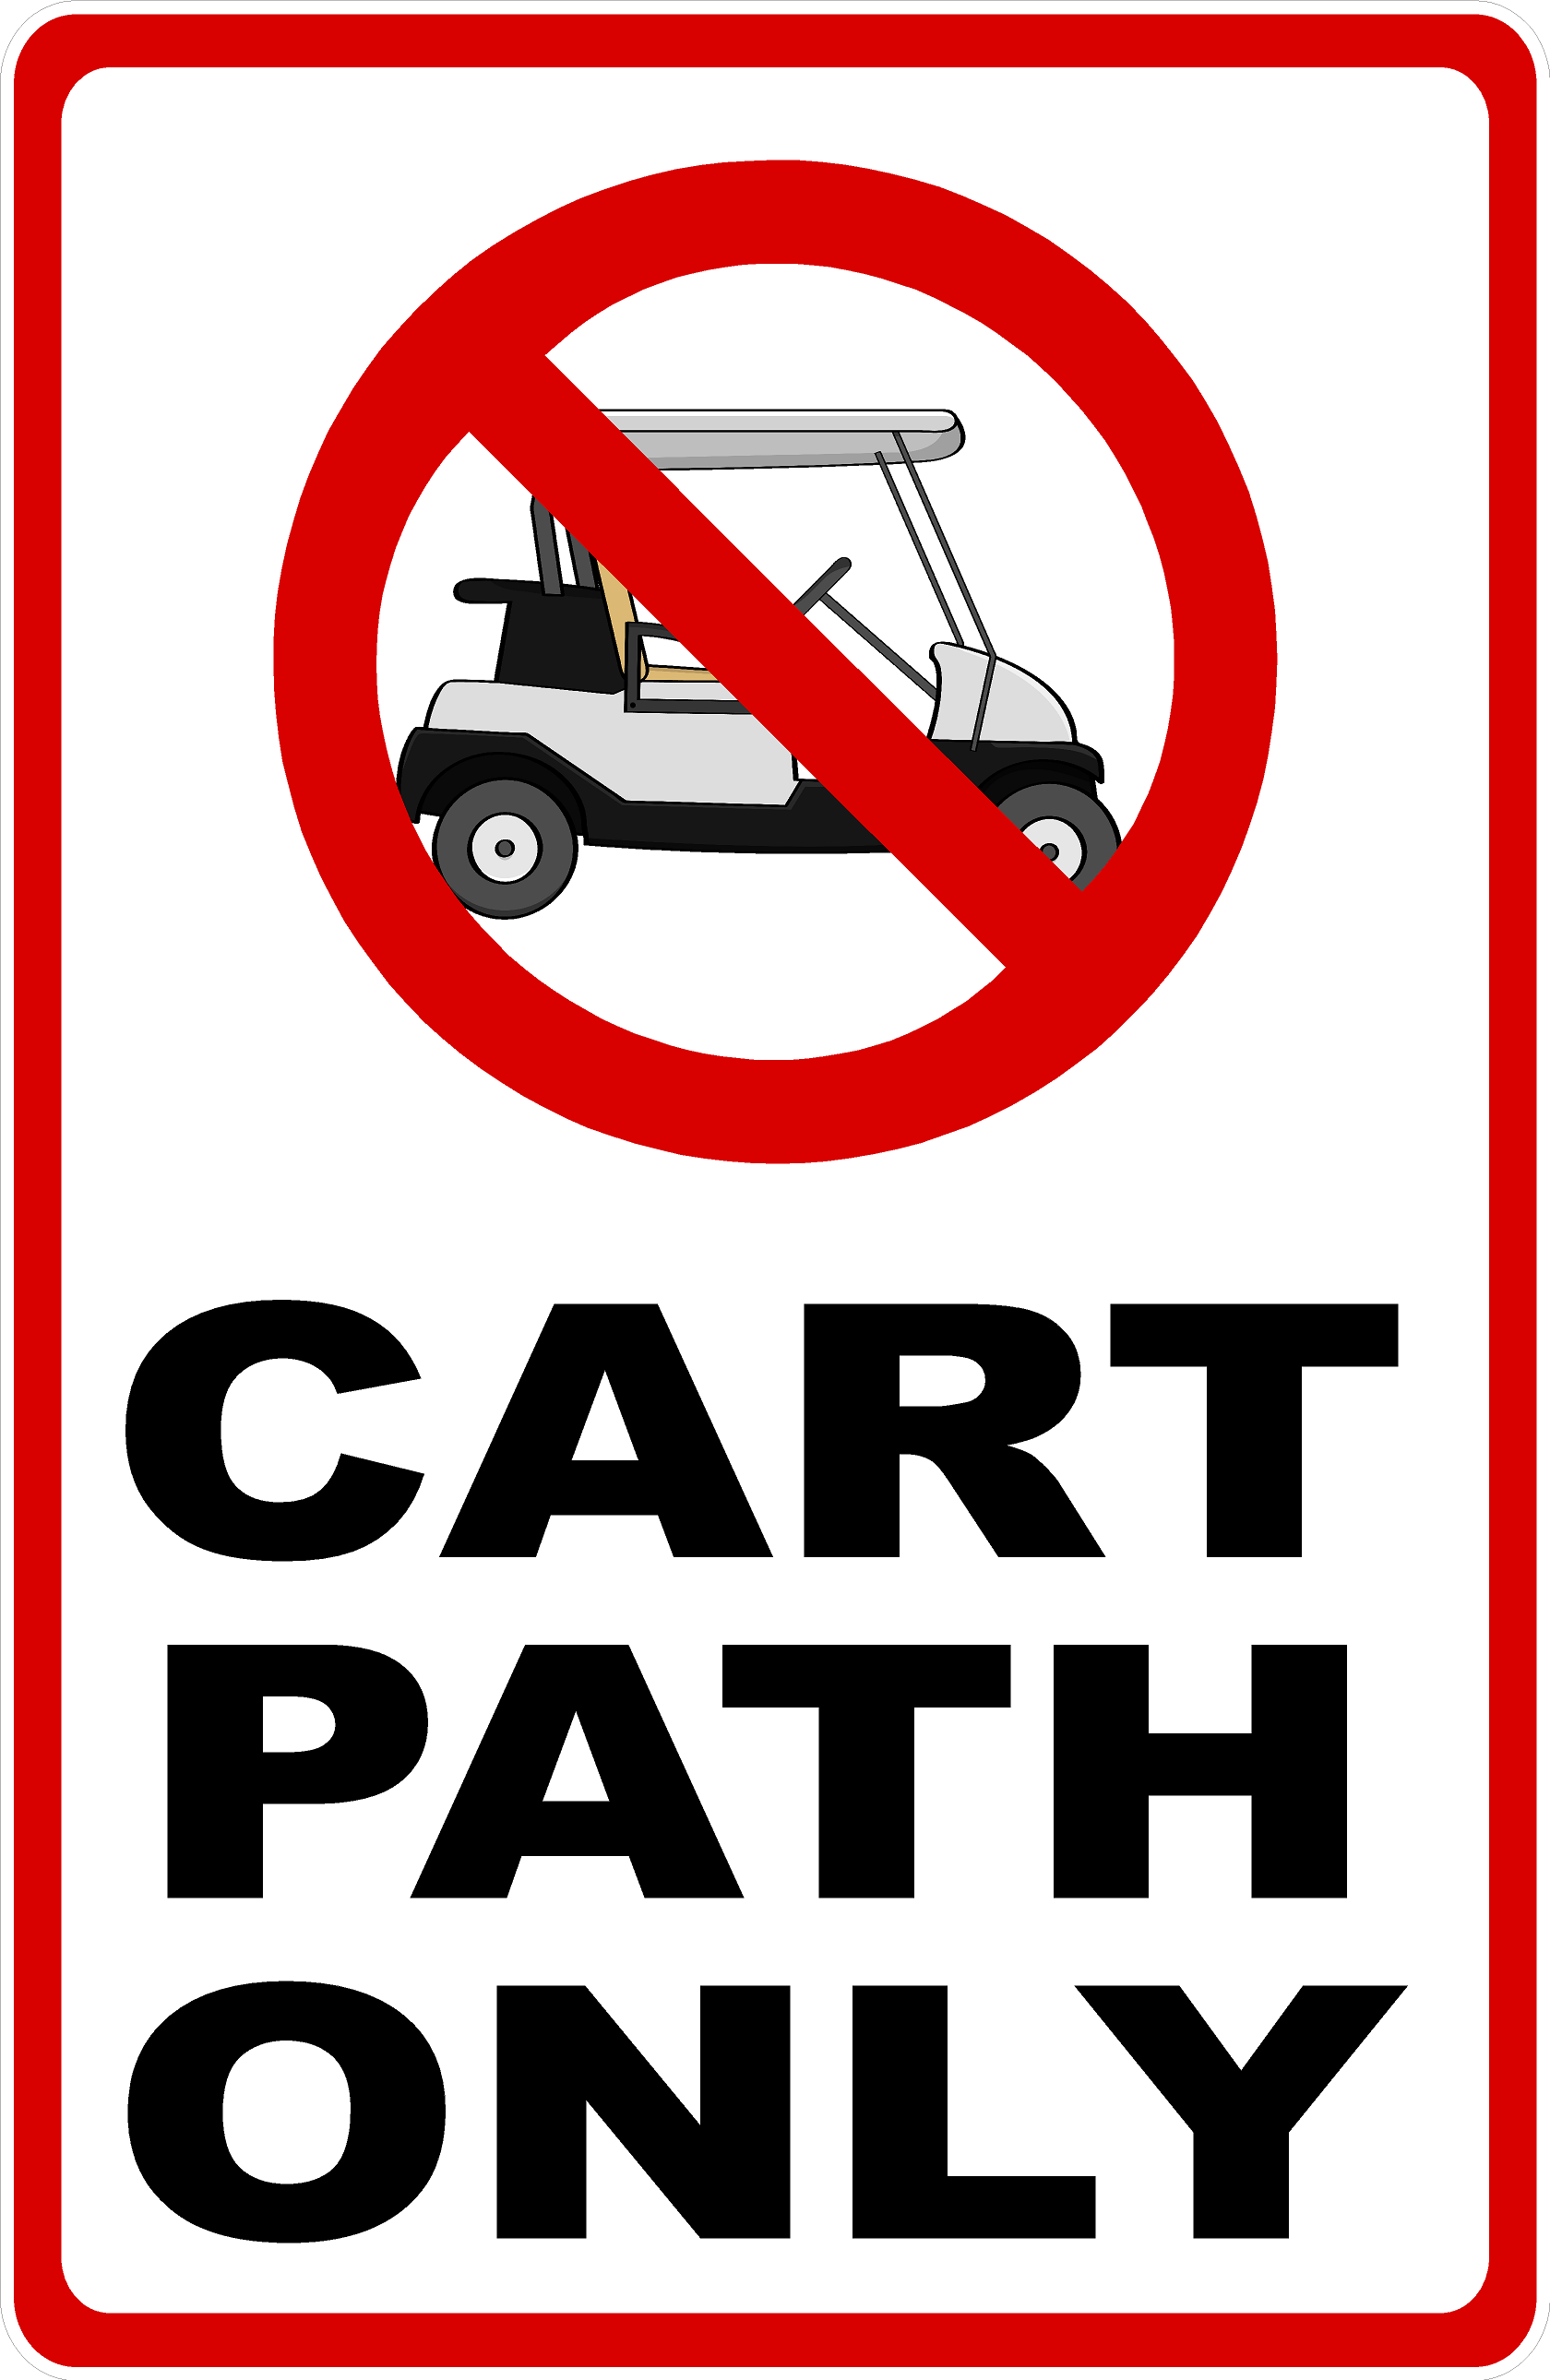 Image result for cart path only golf